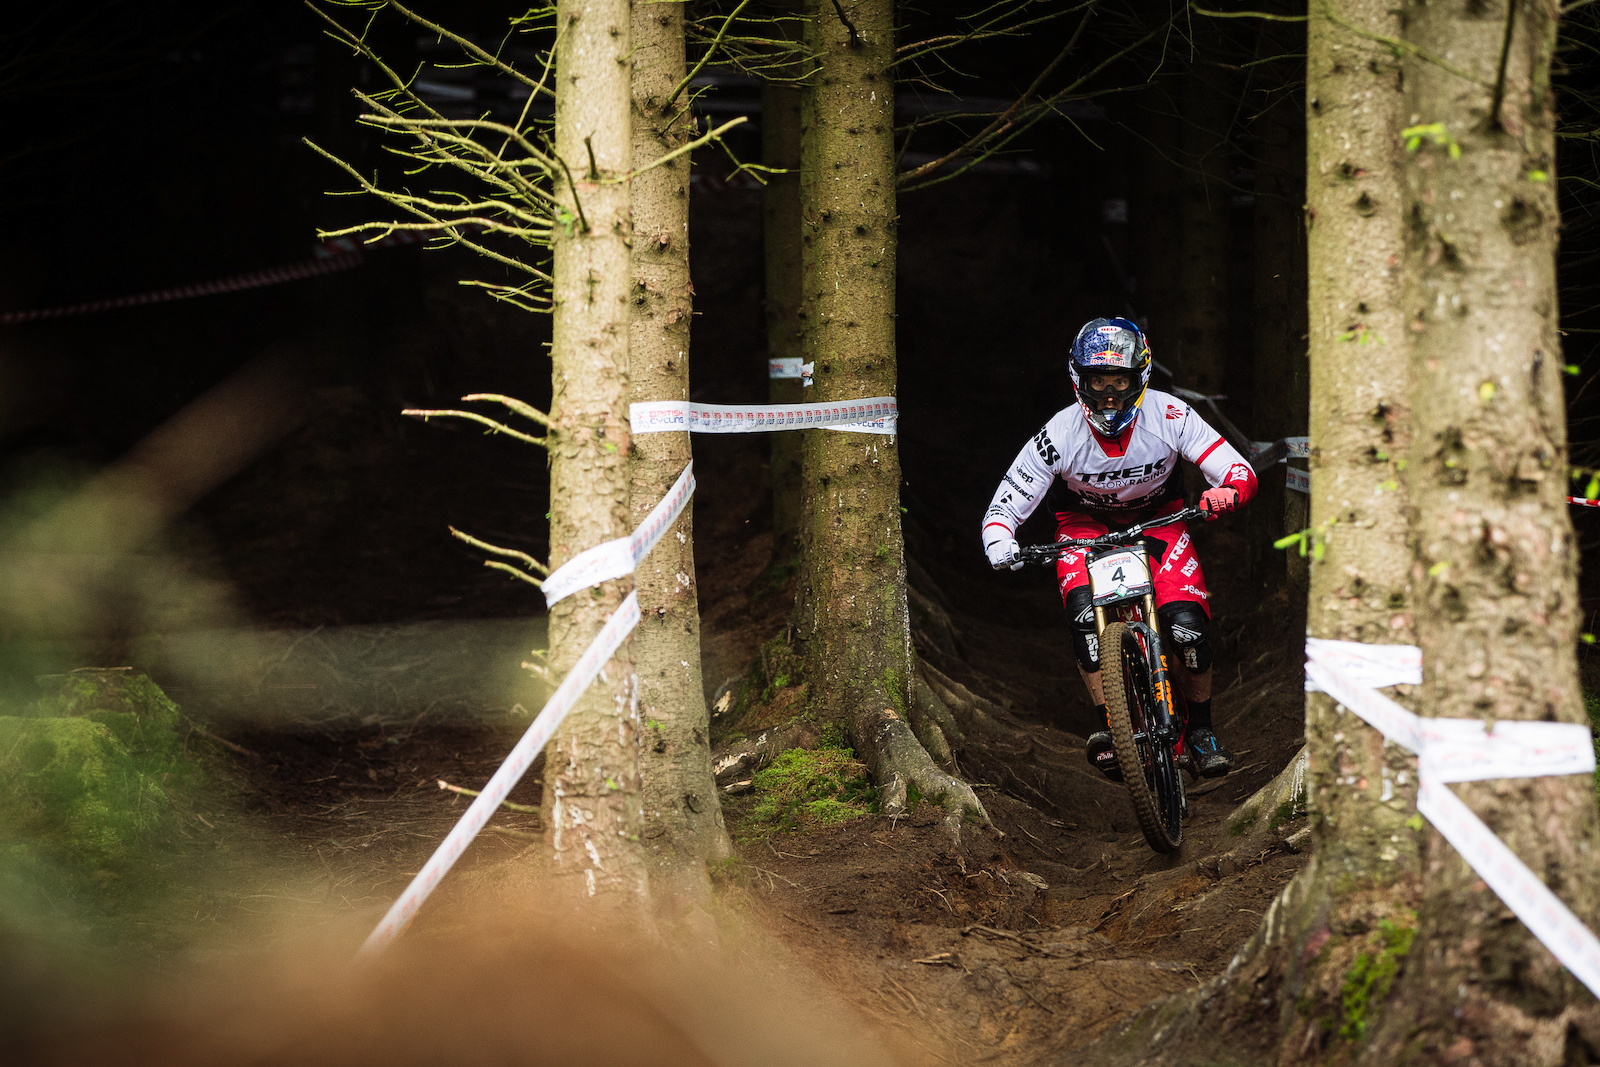 Gee Atherton struggled to get to grips with the Lenzerheide World Cup track where riding on the knife edge of control is where time is found. He is having no such problems in the Welsh forest at Revolution and set a high pace on track.